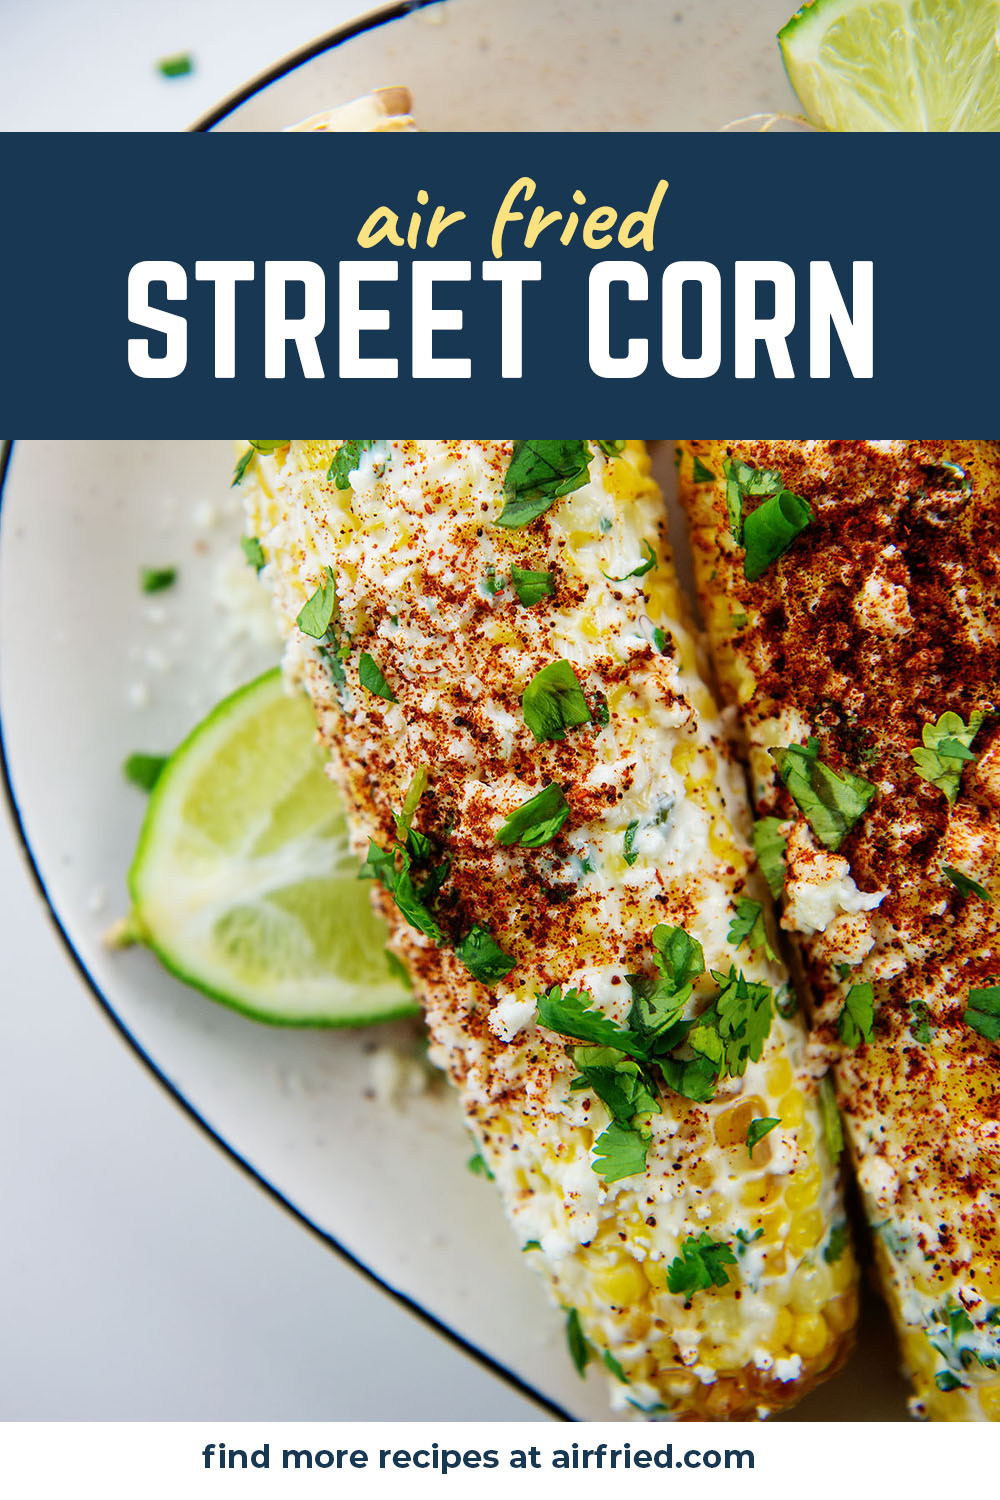 This recipe is a Mexican inspired corn on the cob that is coated in a delicious sauce.